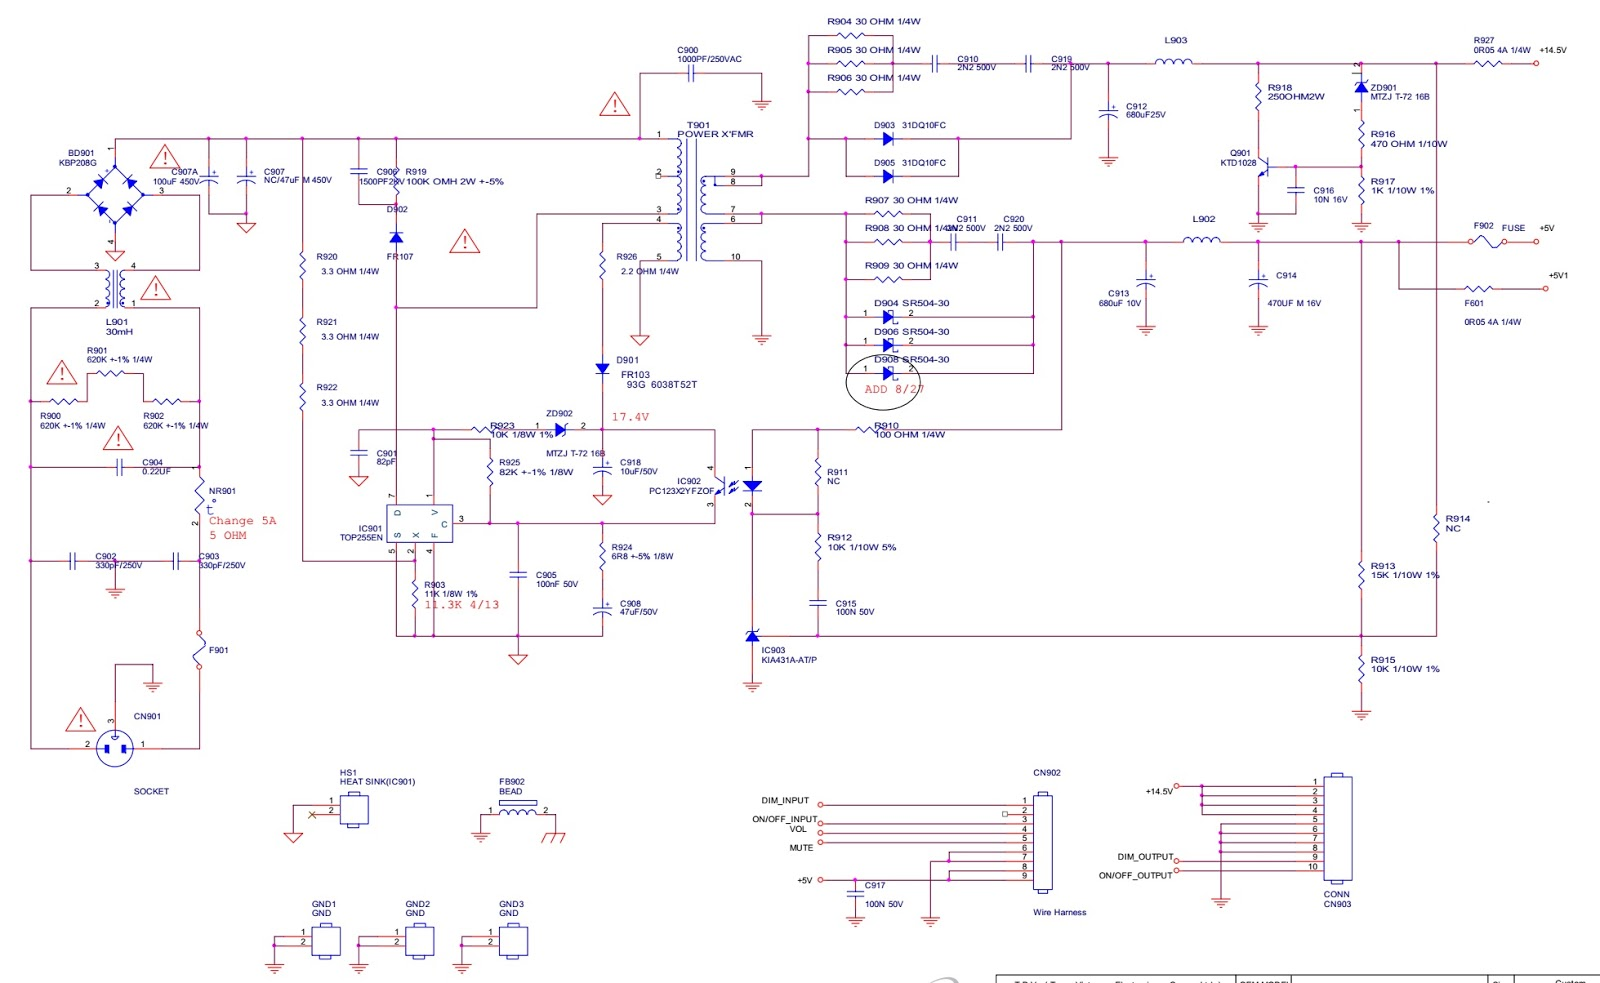 Aoc Envision L905a Led Monitor How To Enter Service Mode Smps Circuit Diagram Schematic And Pwb